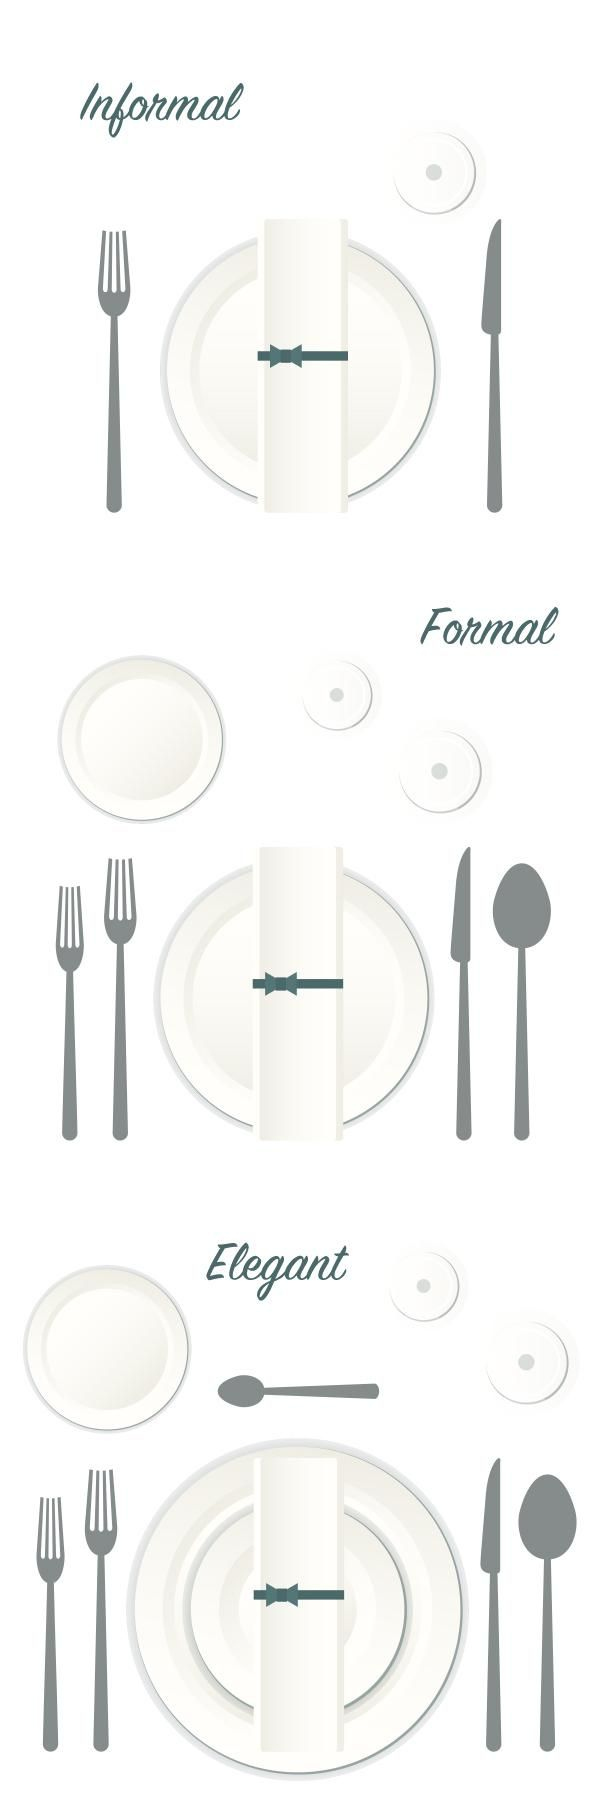 learn how to set the dinner table for every occasion kirkland s elegant table setting diagram [ 600 x 1800 Pixel ]